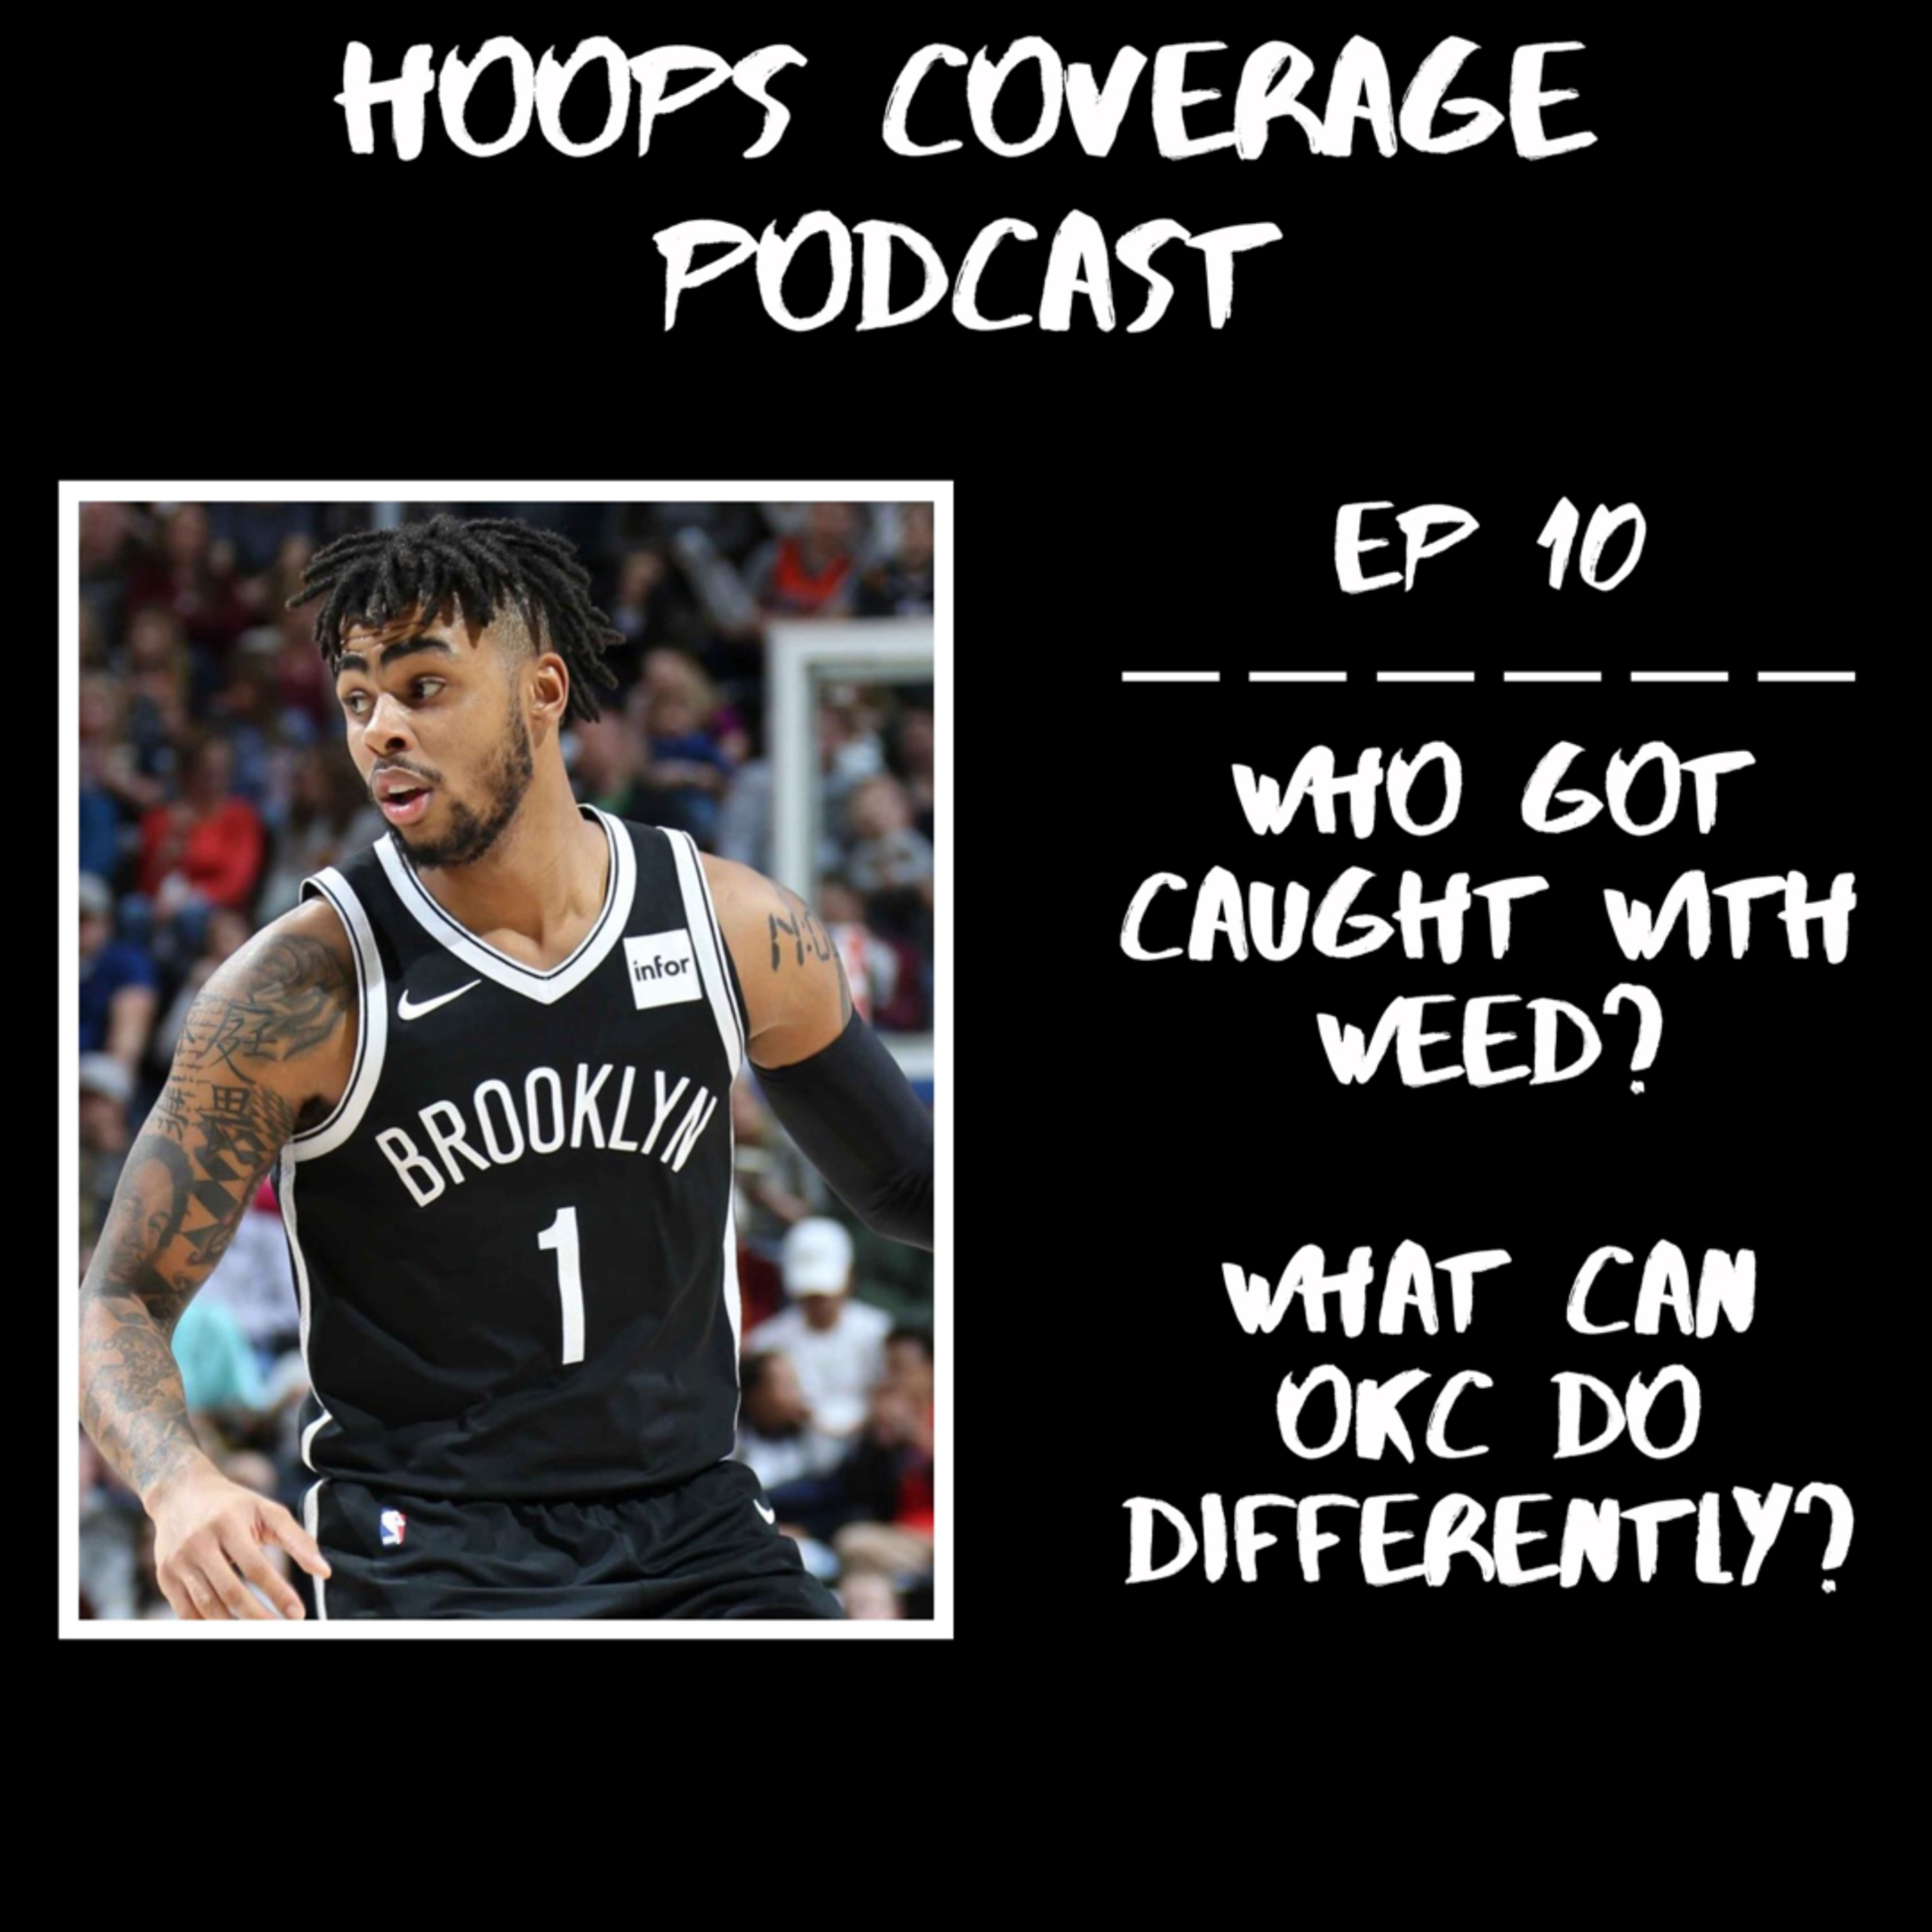 D'Lo caught with weed?| Houston can't win playing how they play| Hoops Coverage Ep 10